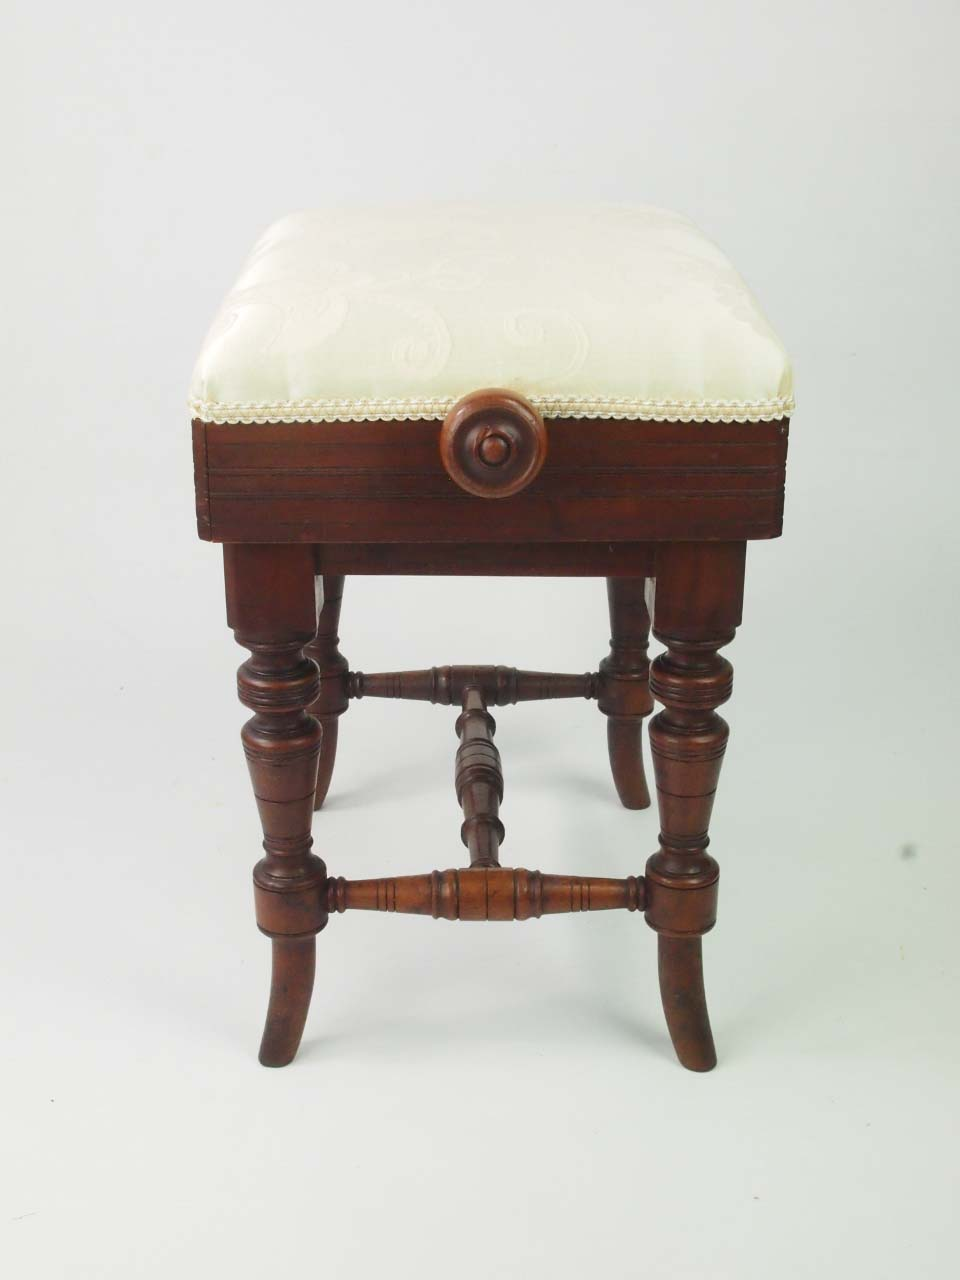 Antique Victorian Rise And Fall Piano Stool With Makers